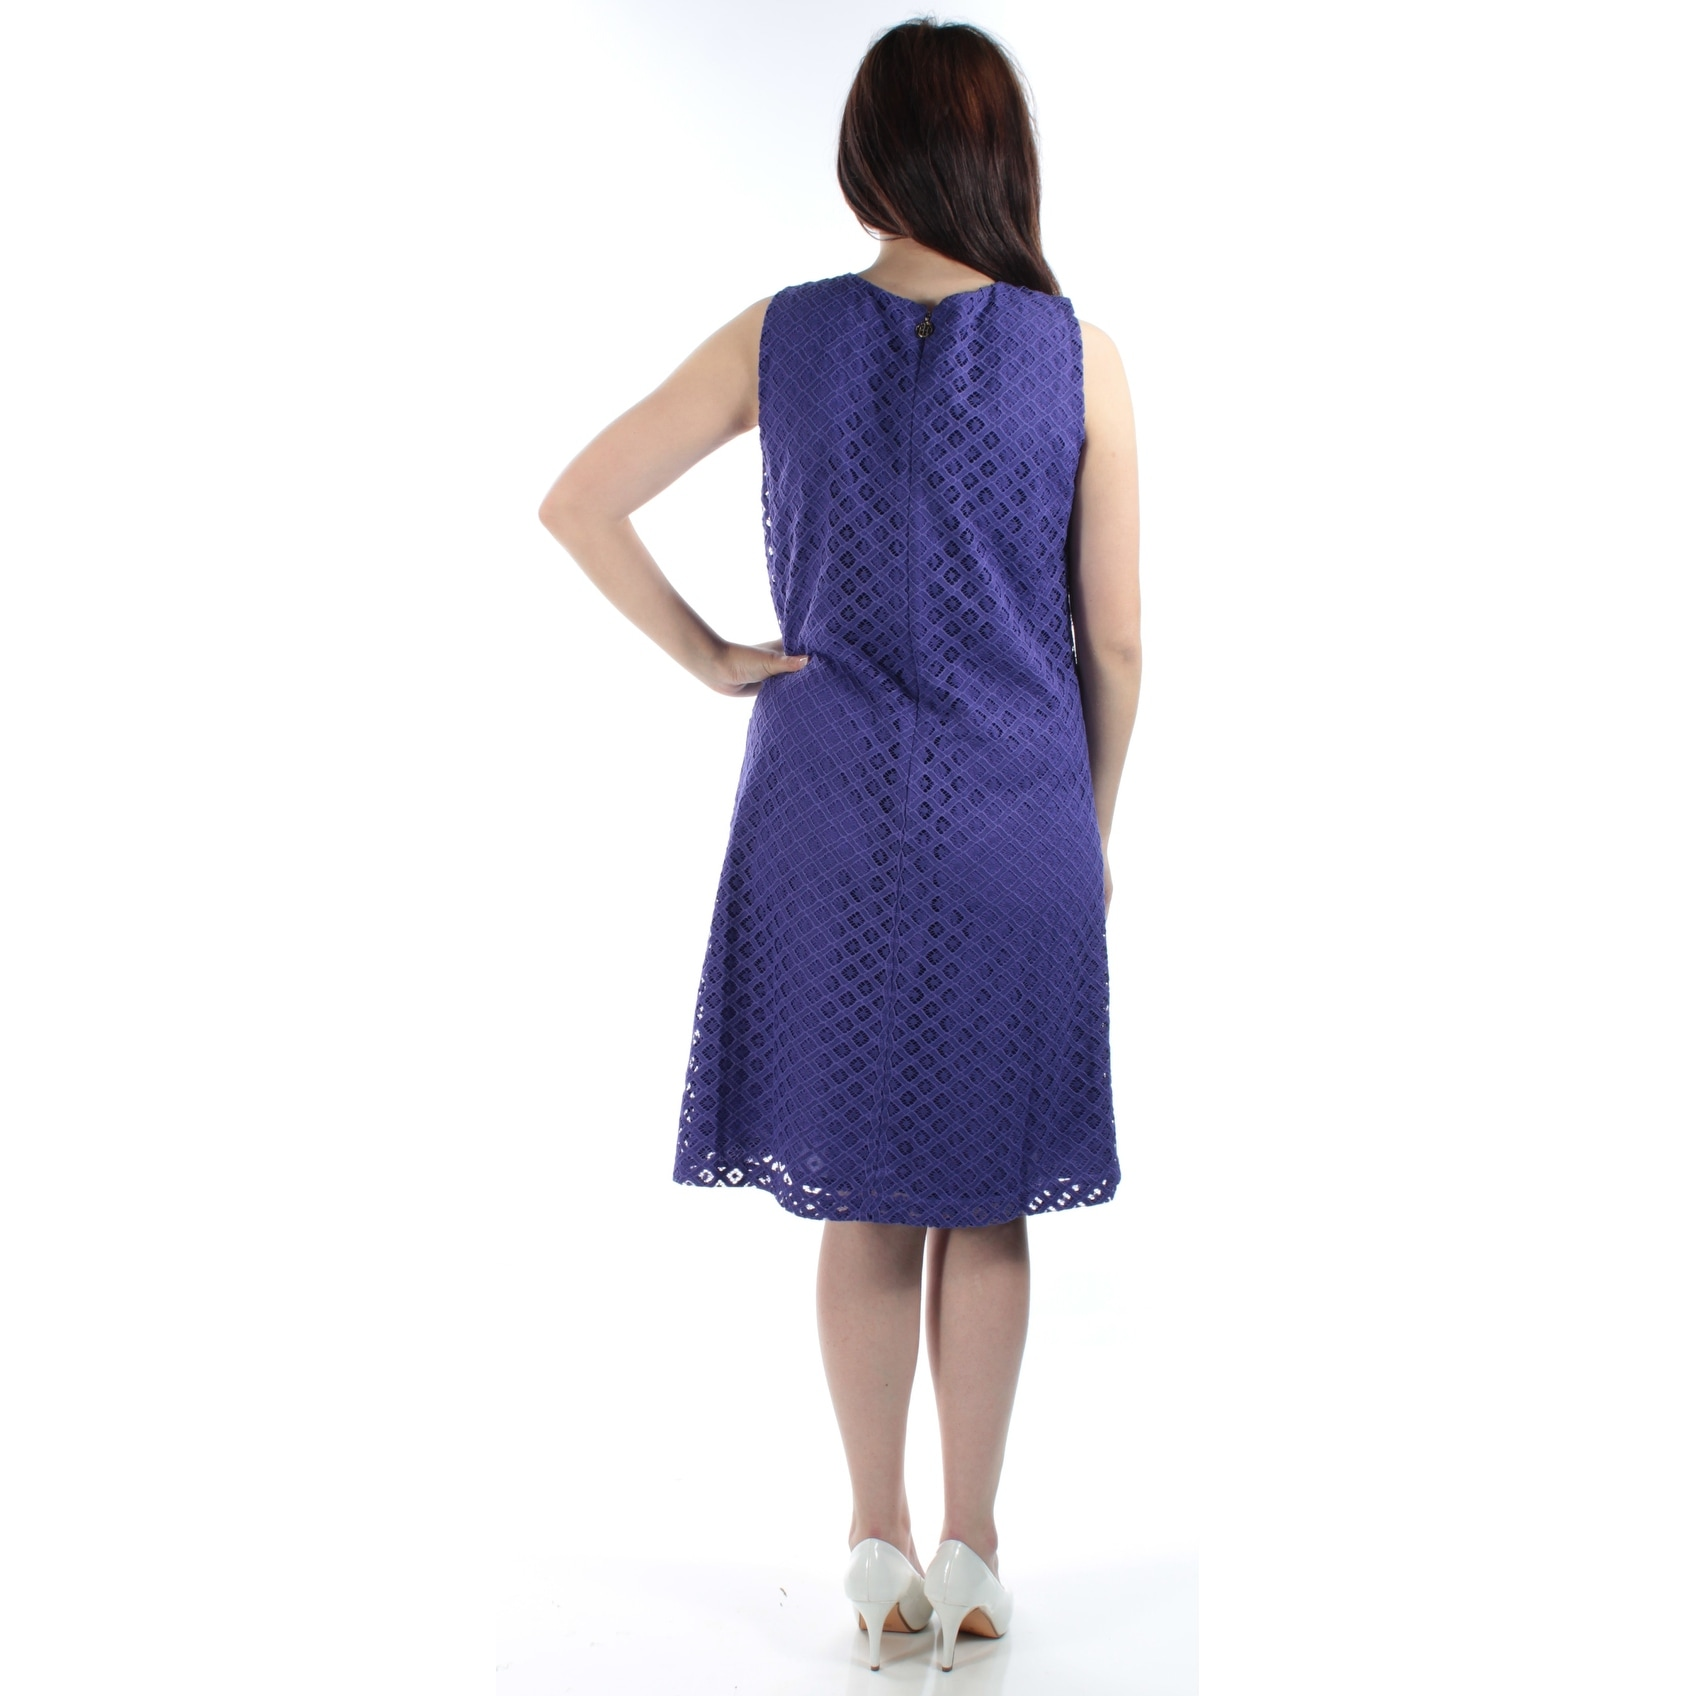 7c7ff7b011651 Shop TOMMY HILFIGER Womens Purple Lace Detail Sleeveless Crew Neck Knee  Length Shift Dress Size  6 - Free Shipping On Orders Over  45 - Overstock -  21305052